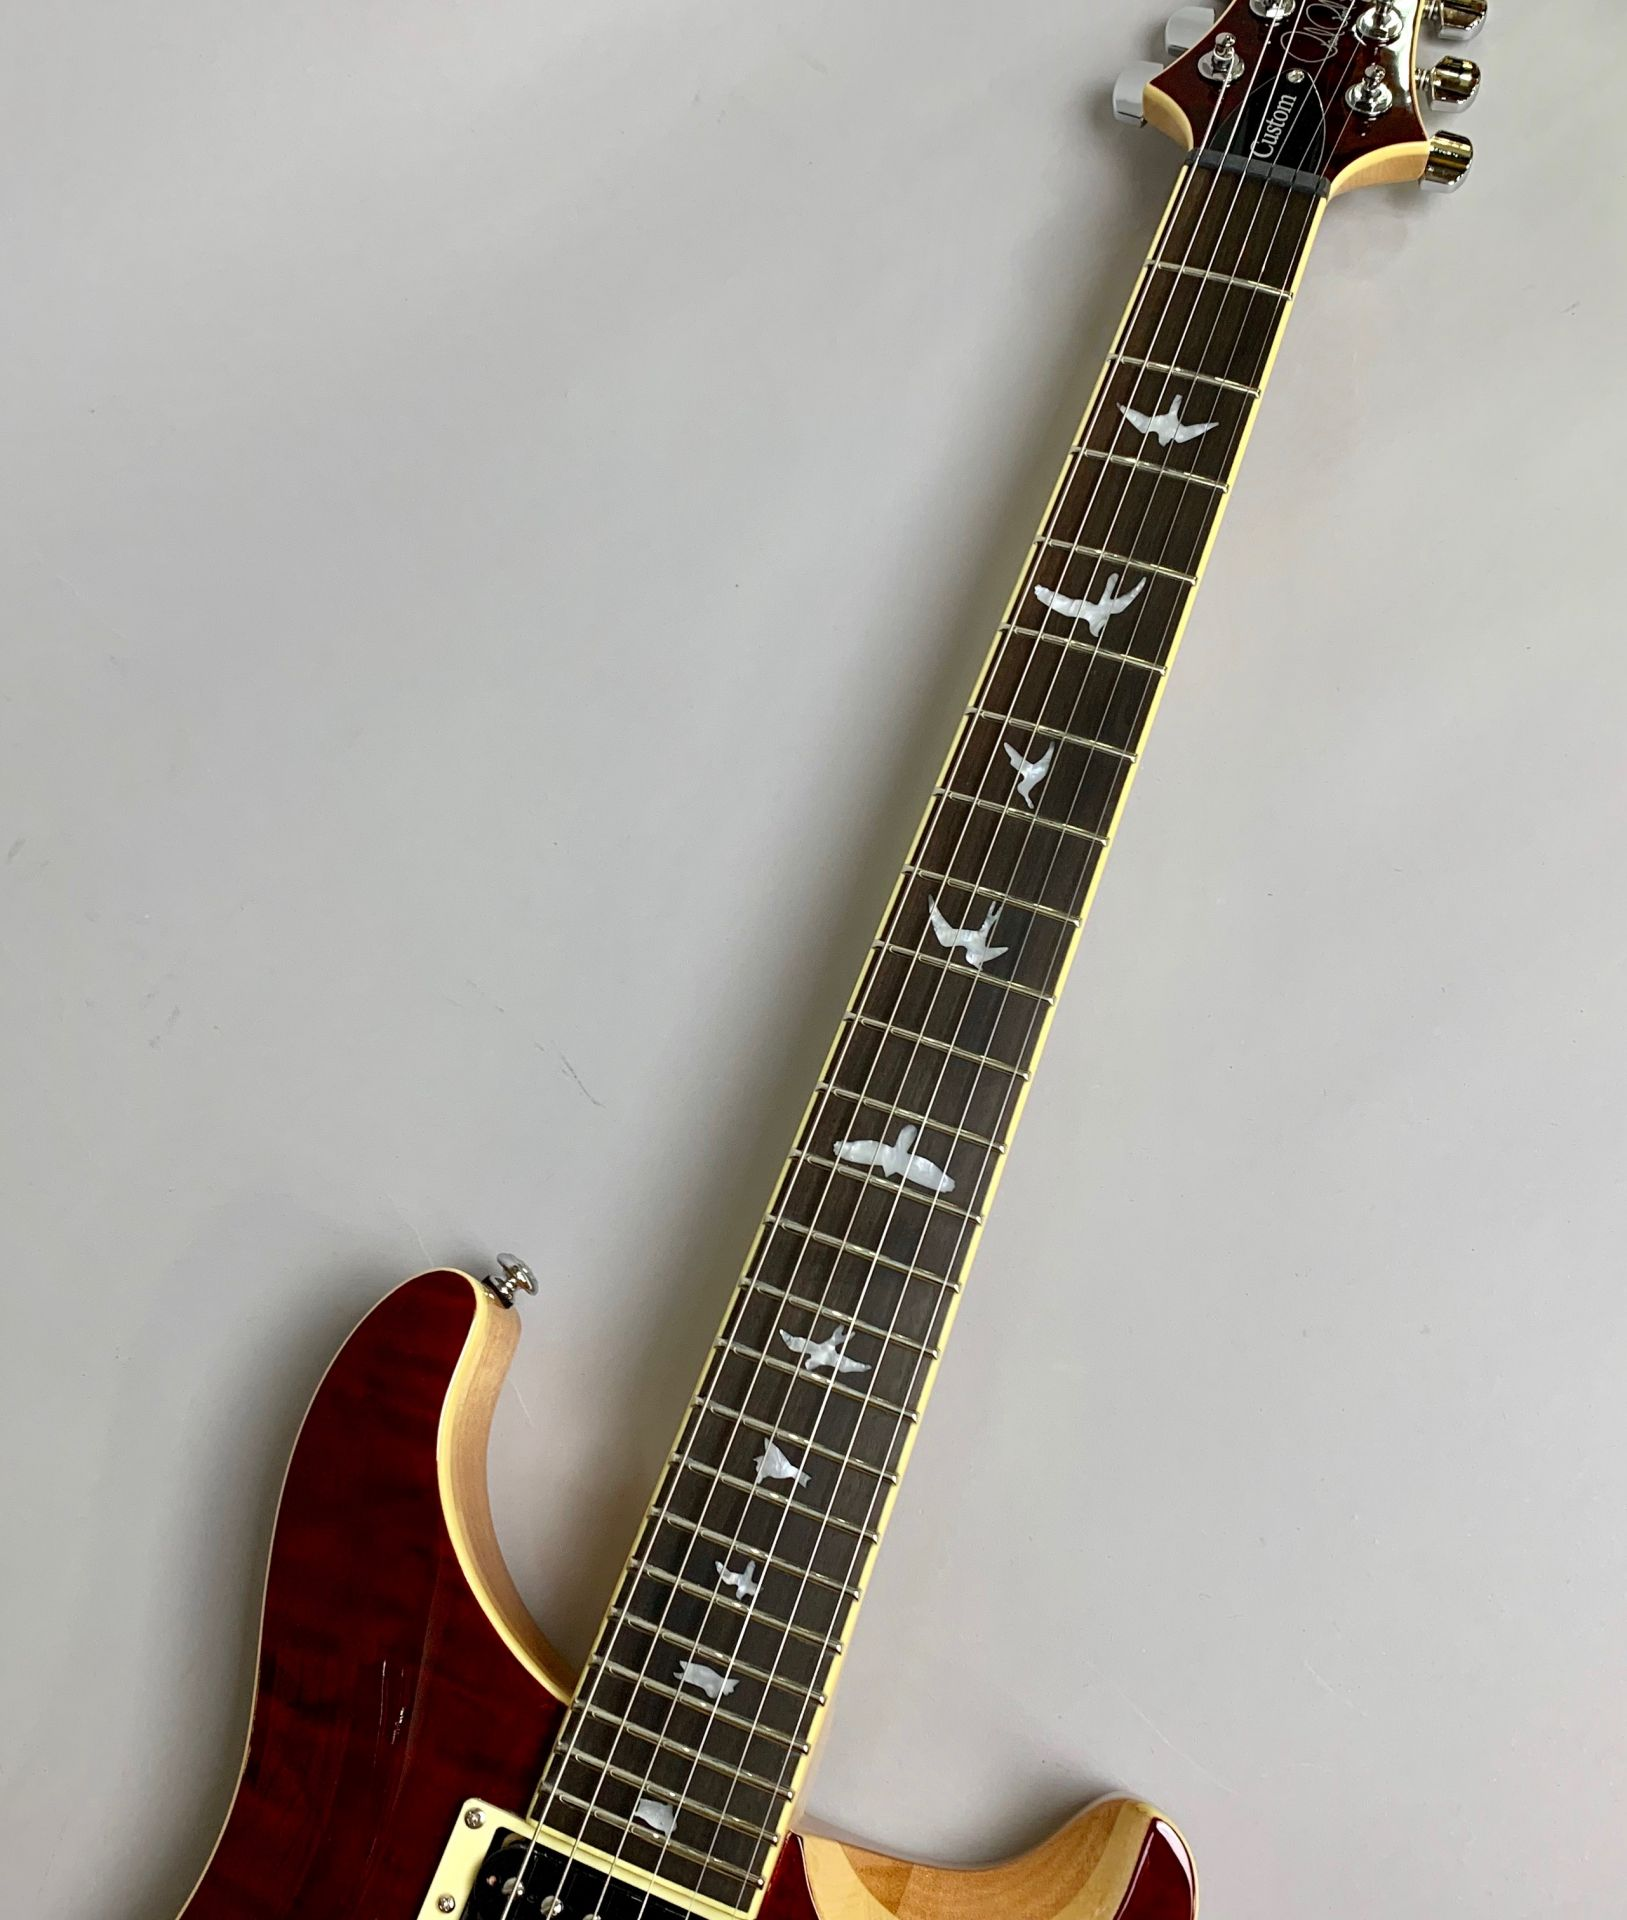 SE CUSTOM 24 QM LTD Black Cherryのヘッド画像